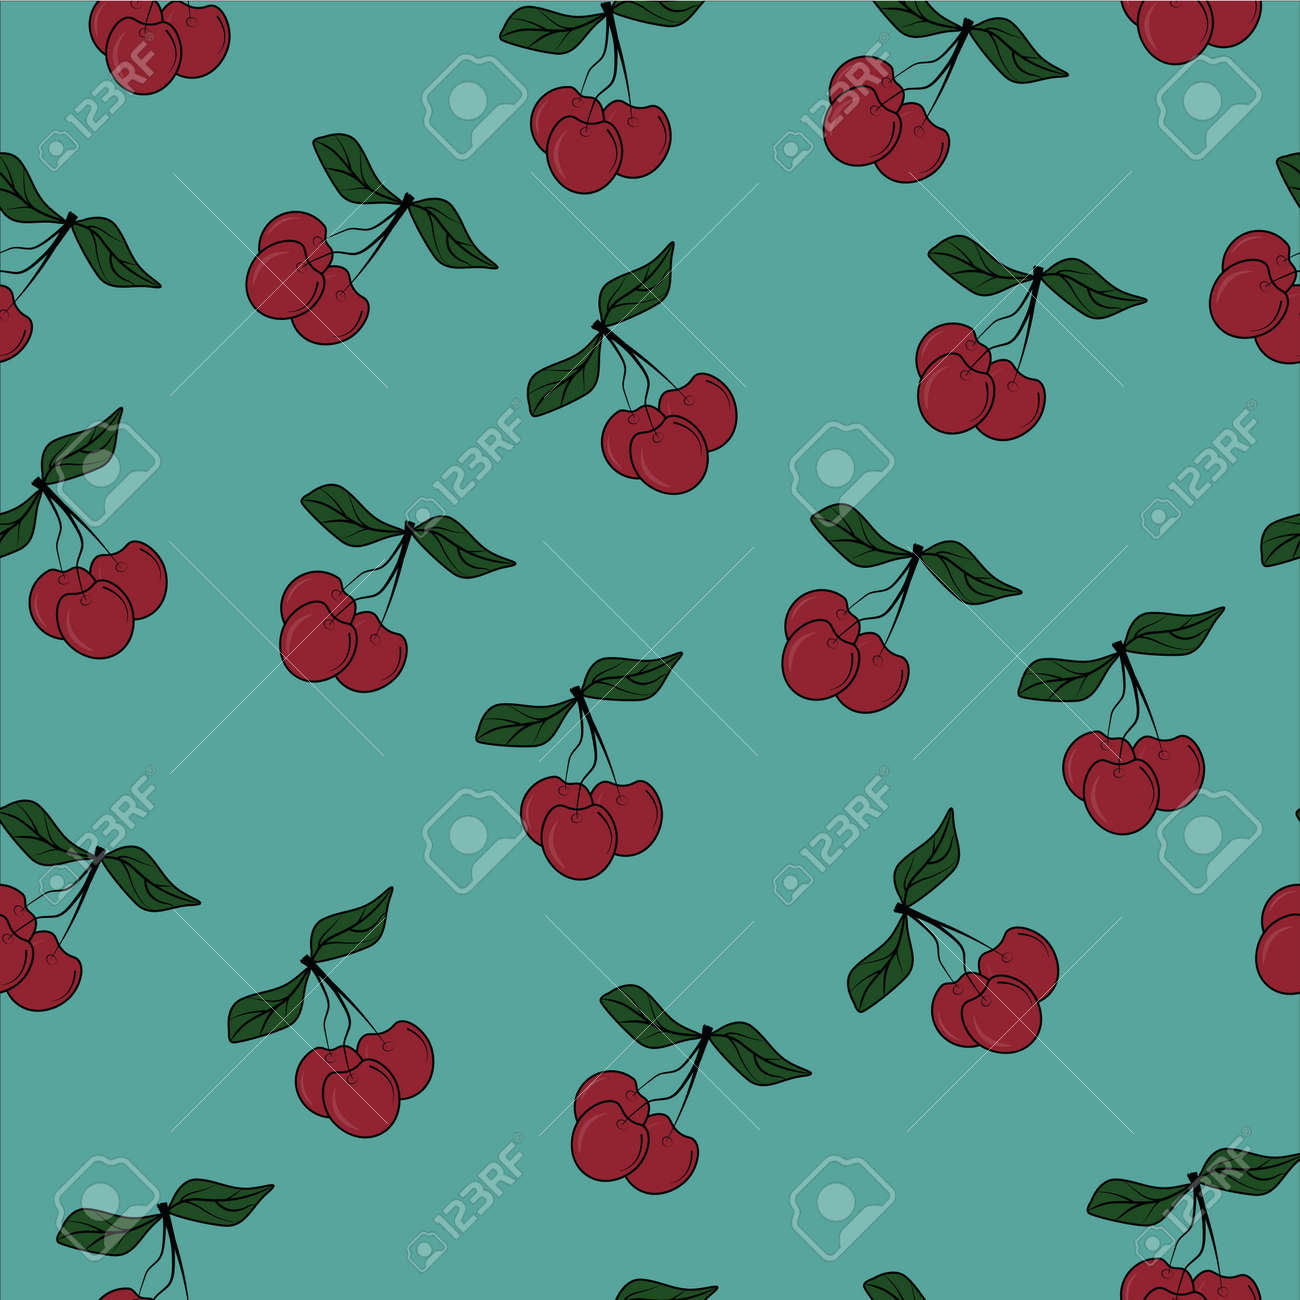 seamless patter with juicy berries, fruits, cherries and textiles - 164080590